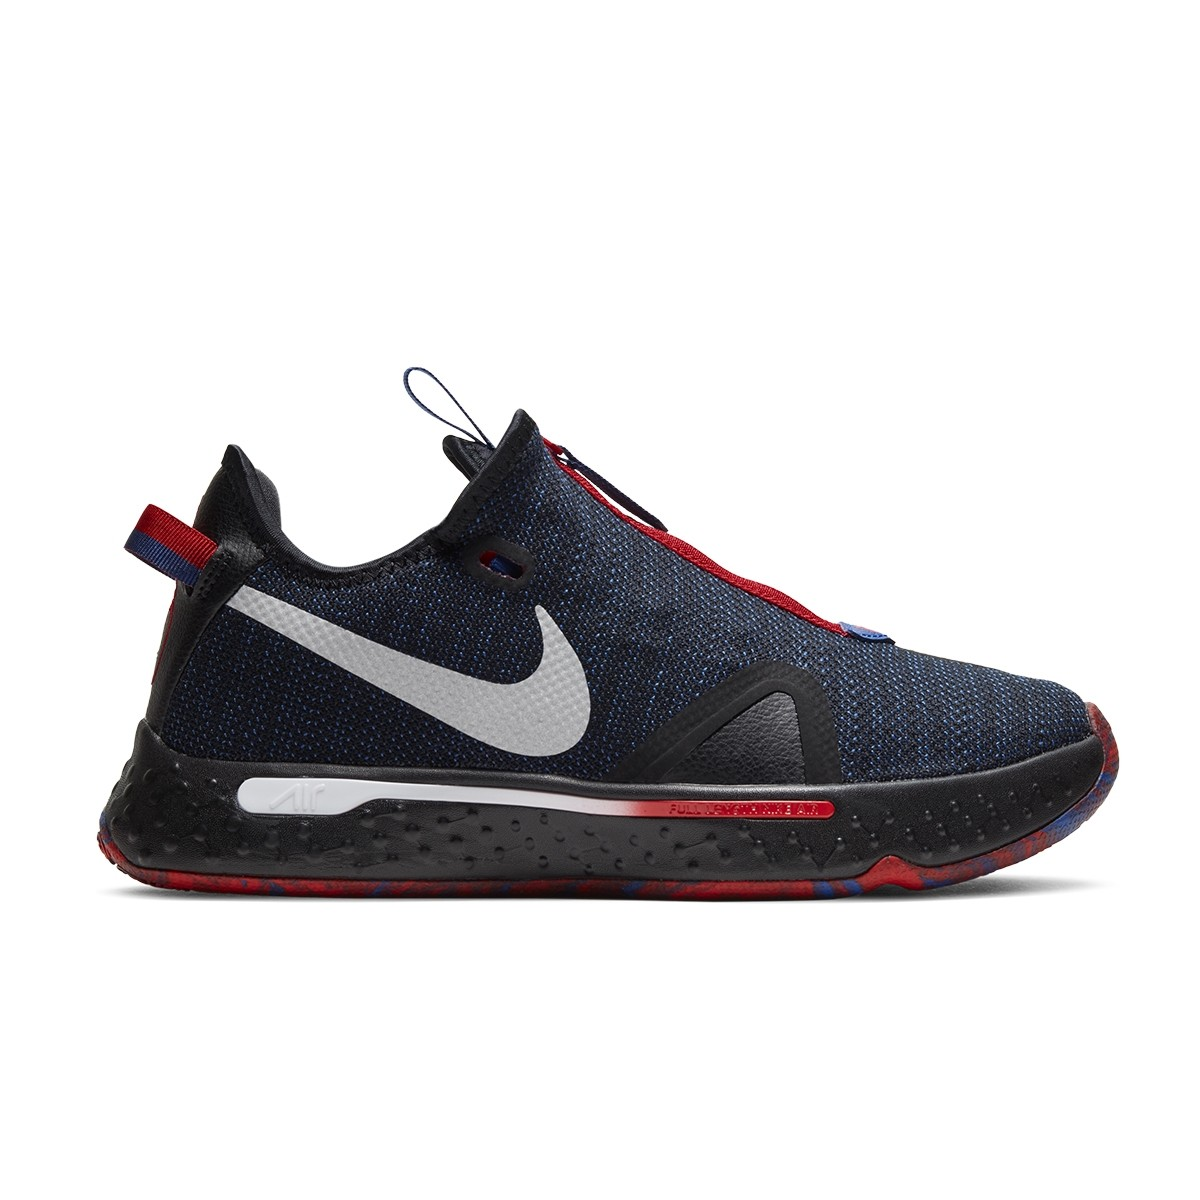 Nike PG 4 GS 'Clippers'